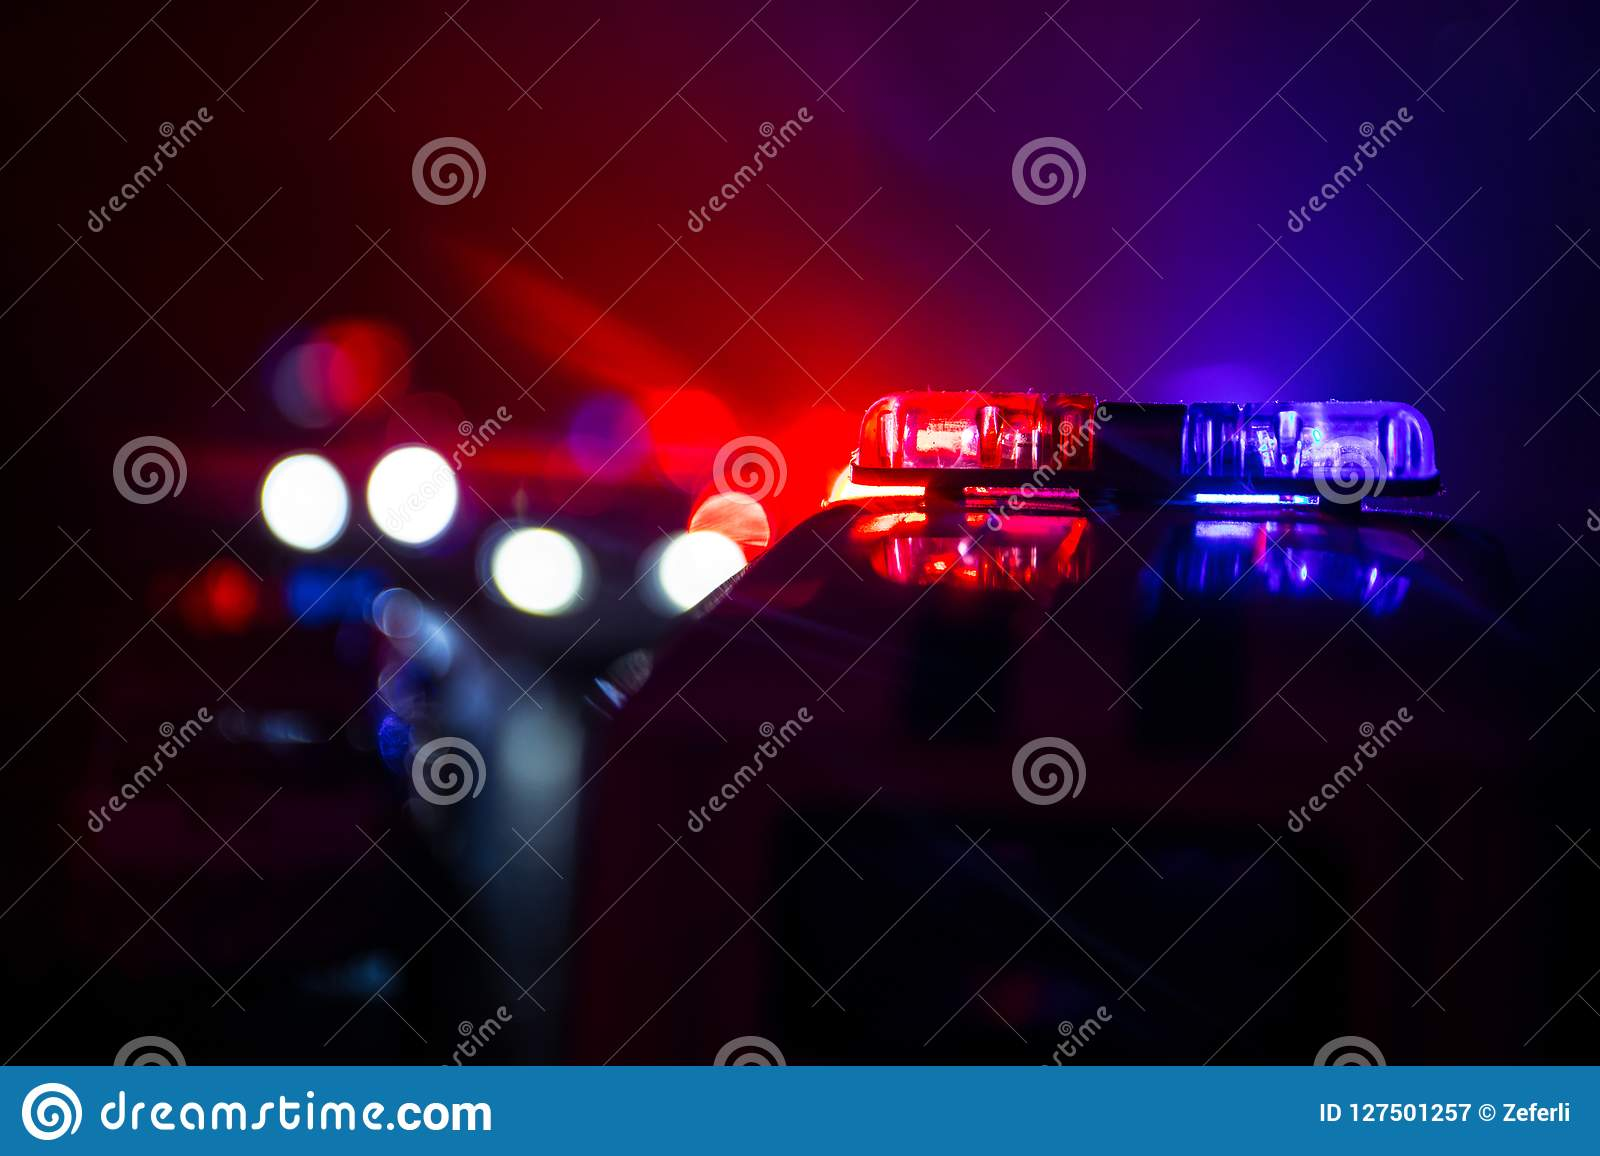 Police Car Chasing A Car At Night With Fog Background  911